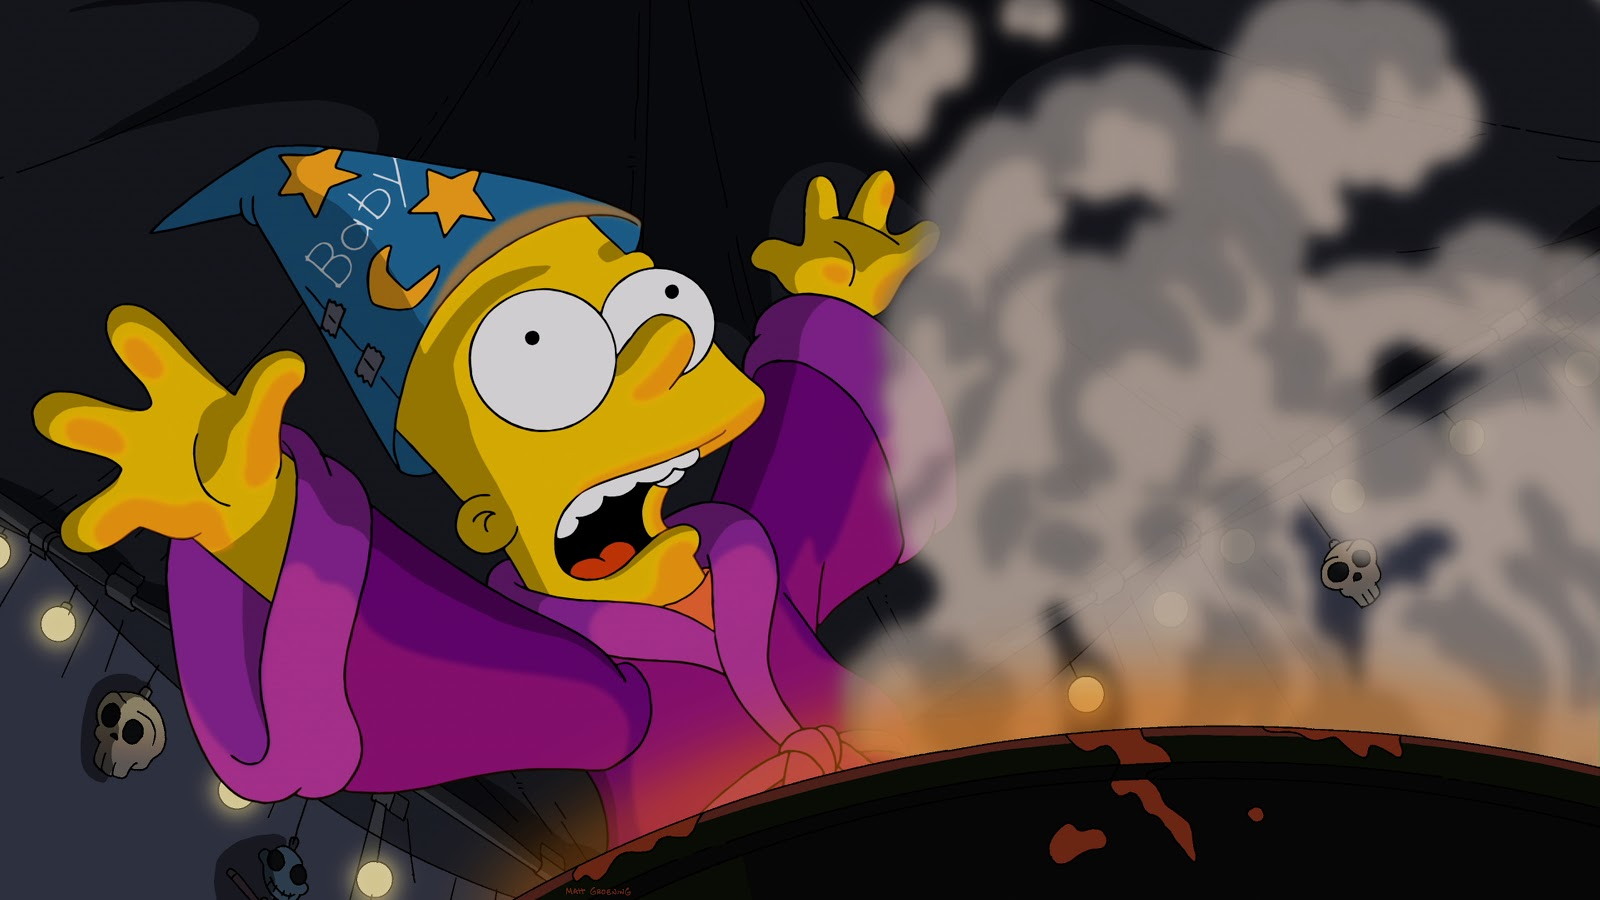 The Simpsons - Episode 25.19 - What to Expect When Bart's Expecting - Promotional Photos